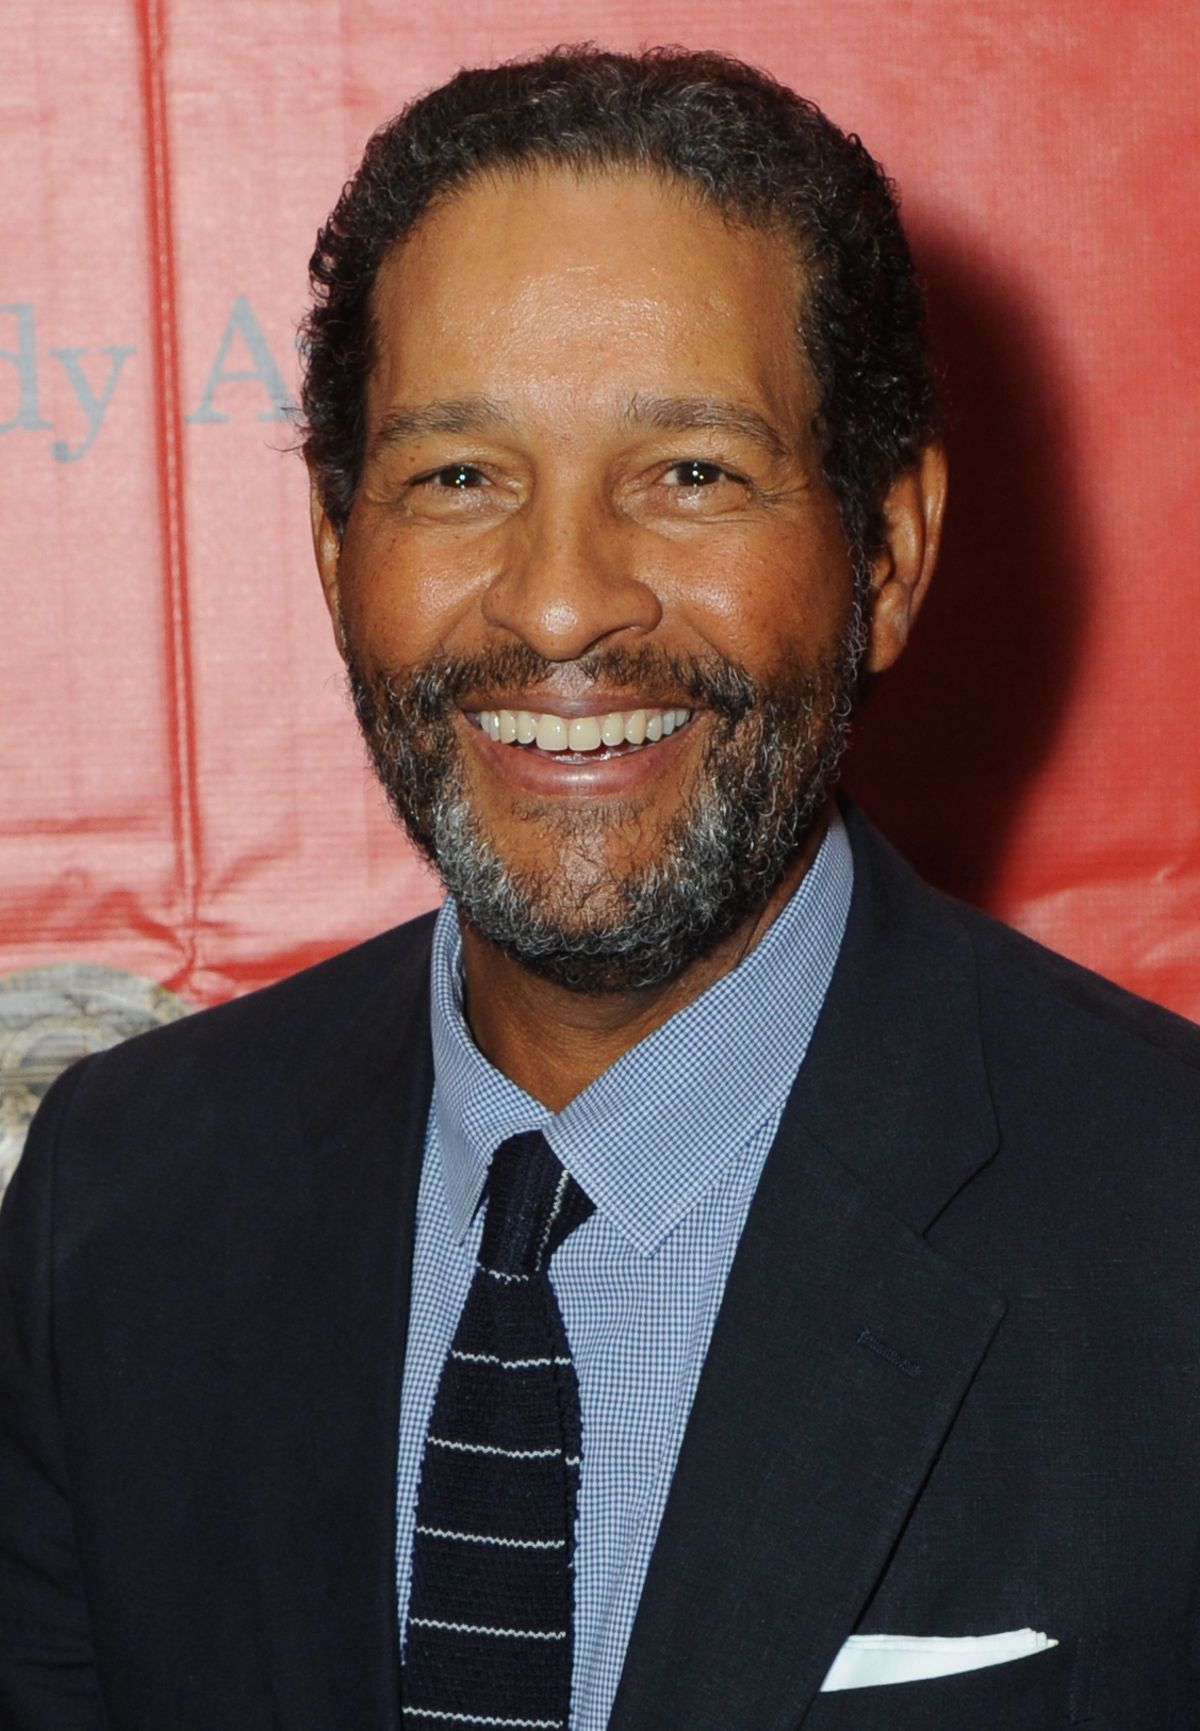 Bryant Gumbel In 2020 Bryant Gumbel Jerry Lee Lewis Talking Heads